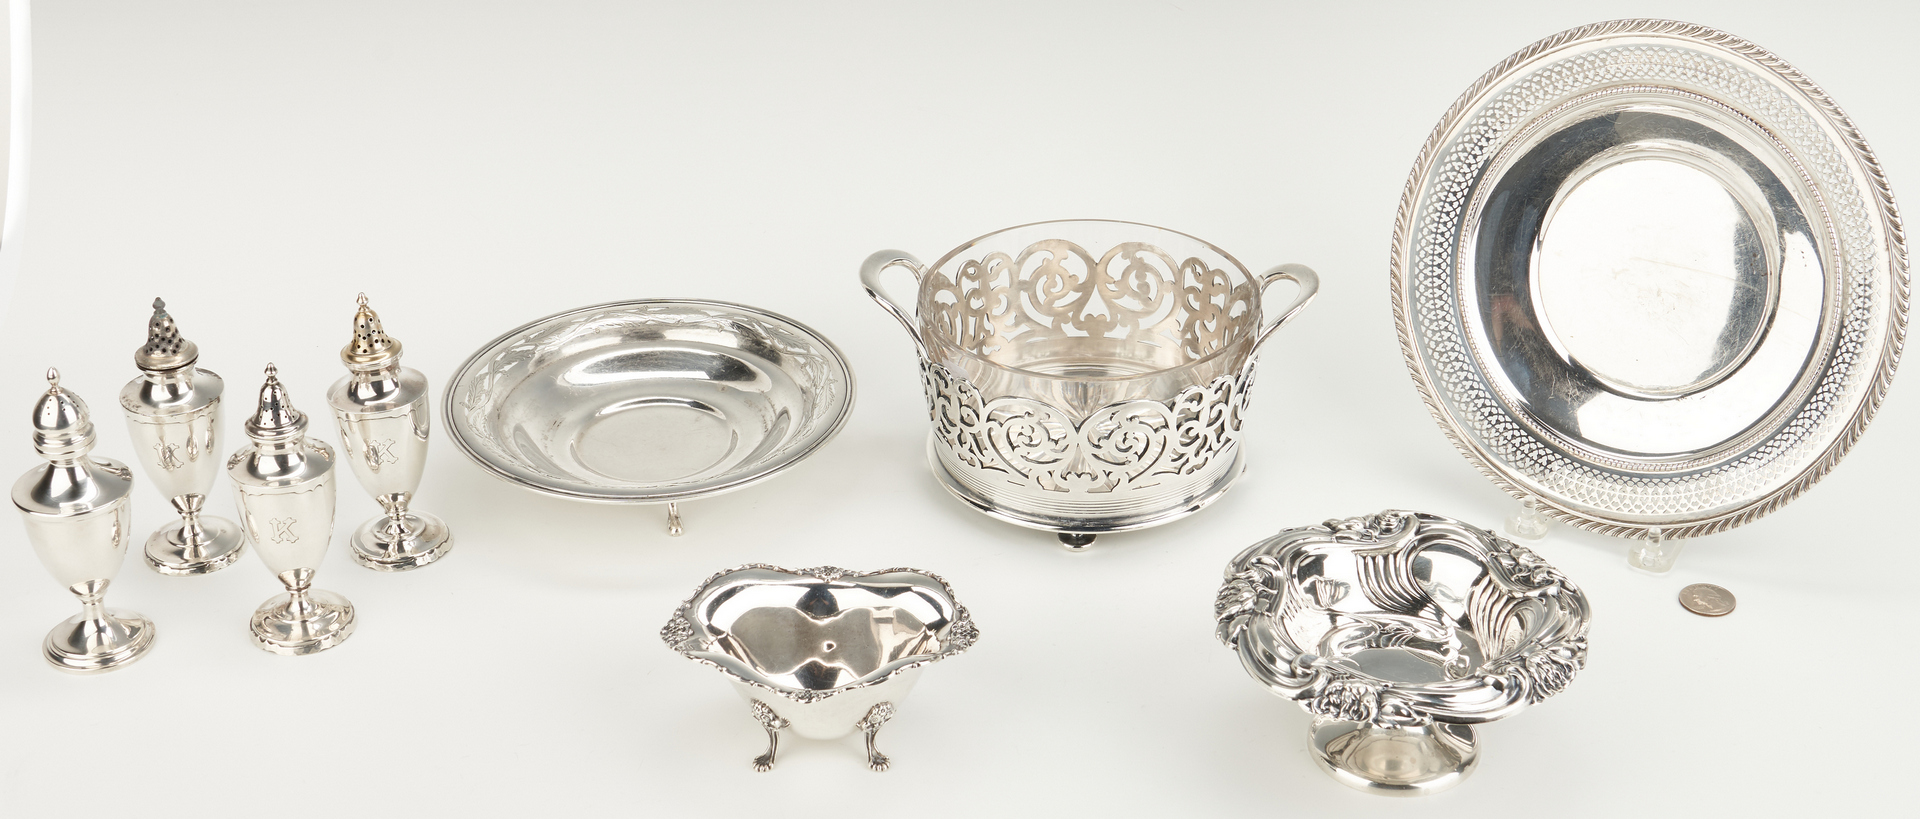 Lot 934: 9 pcs holloware incl. ice bucket, candy dishes